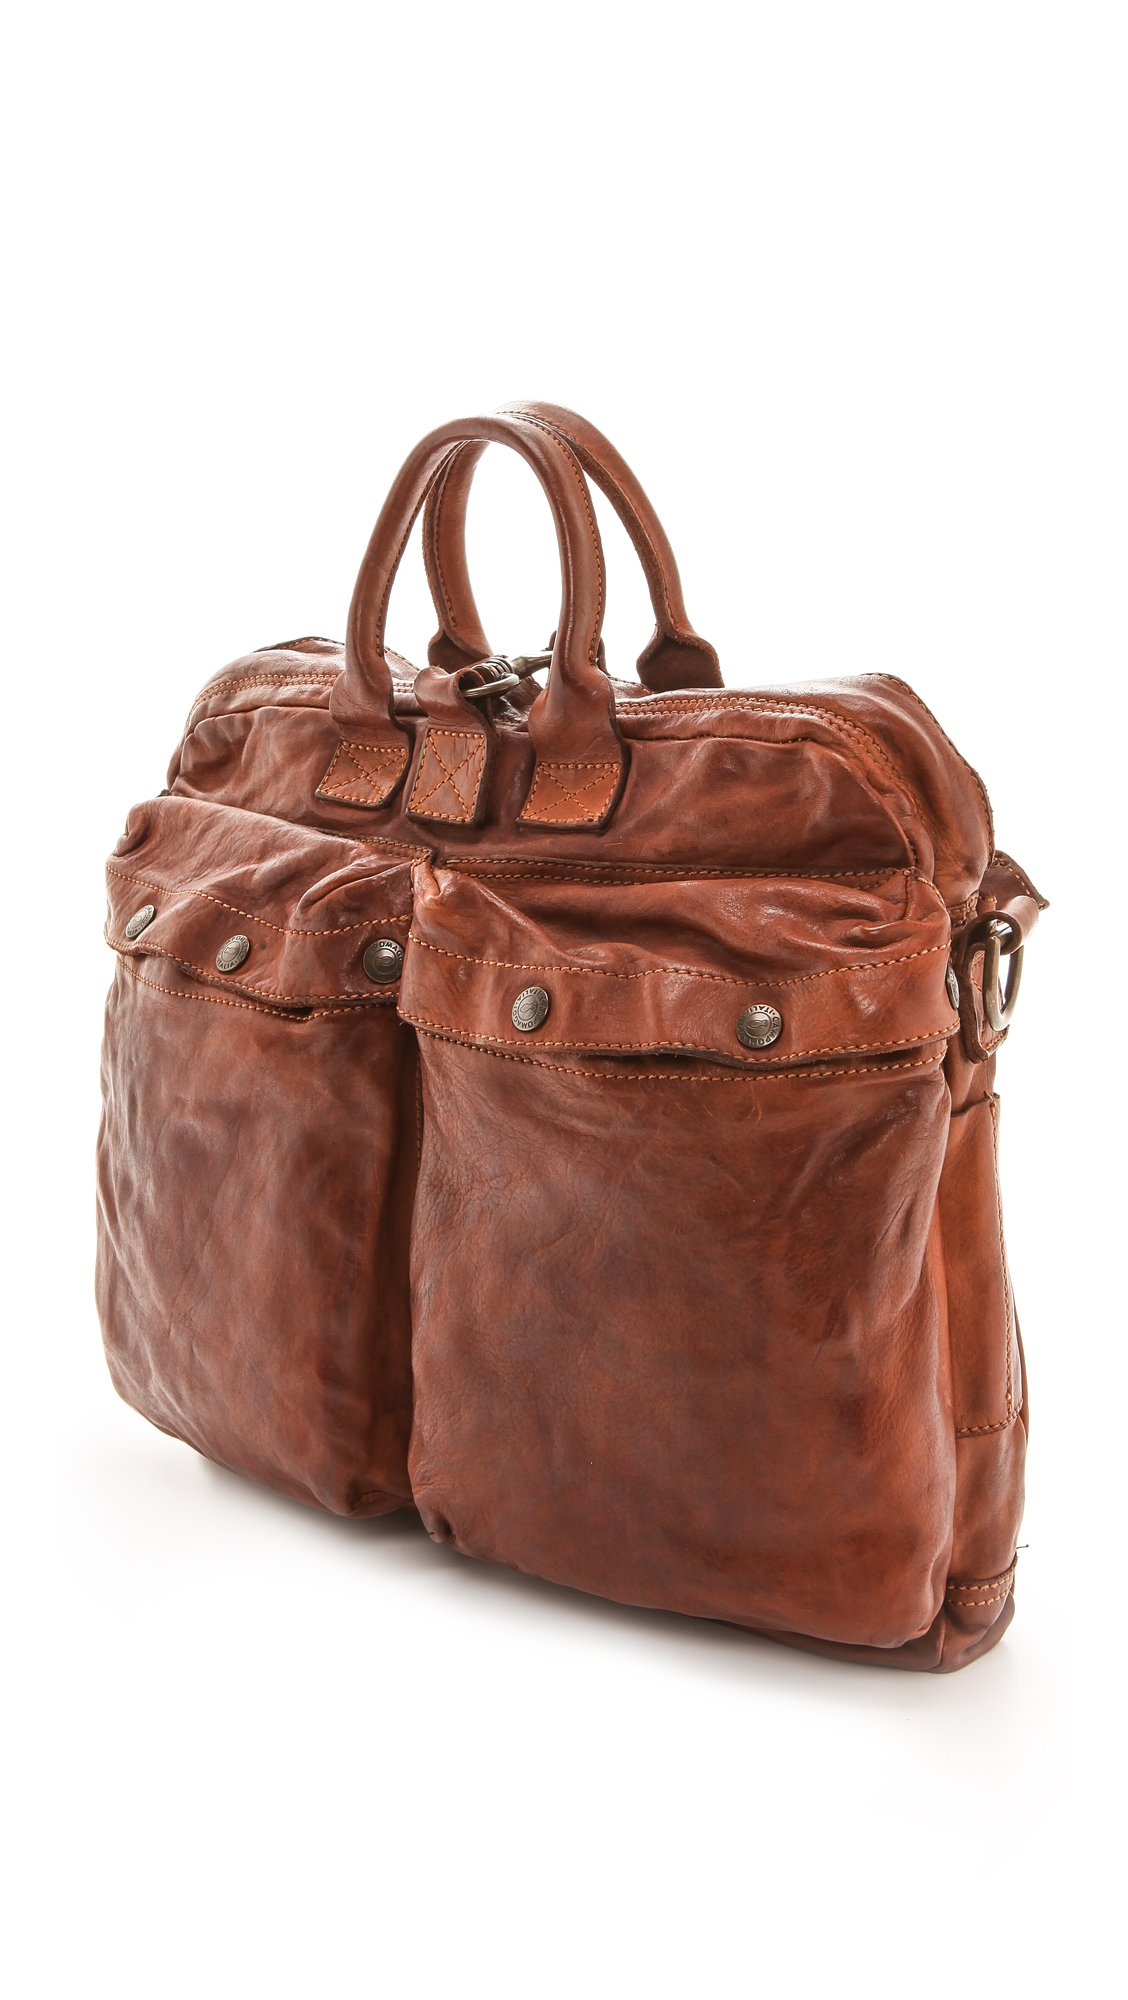 3e964309c456 Lyst - Campomaggi Washed Leather Messenger Bag - Cognac in Brown